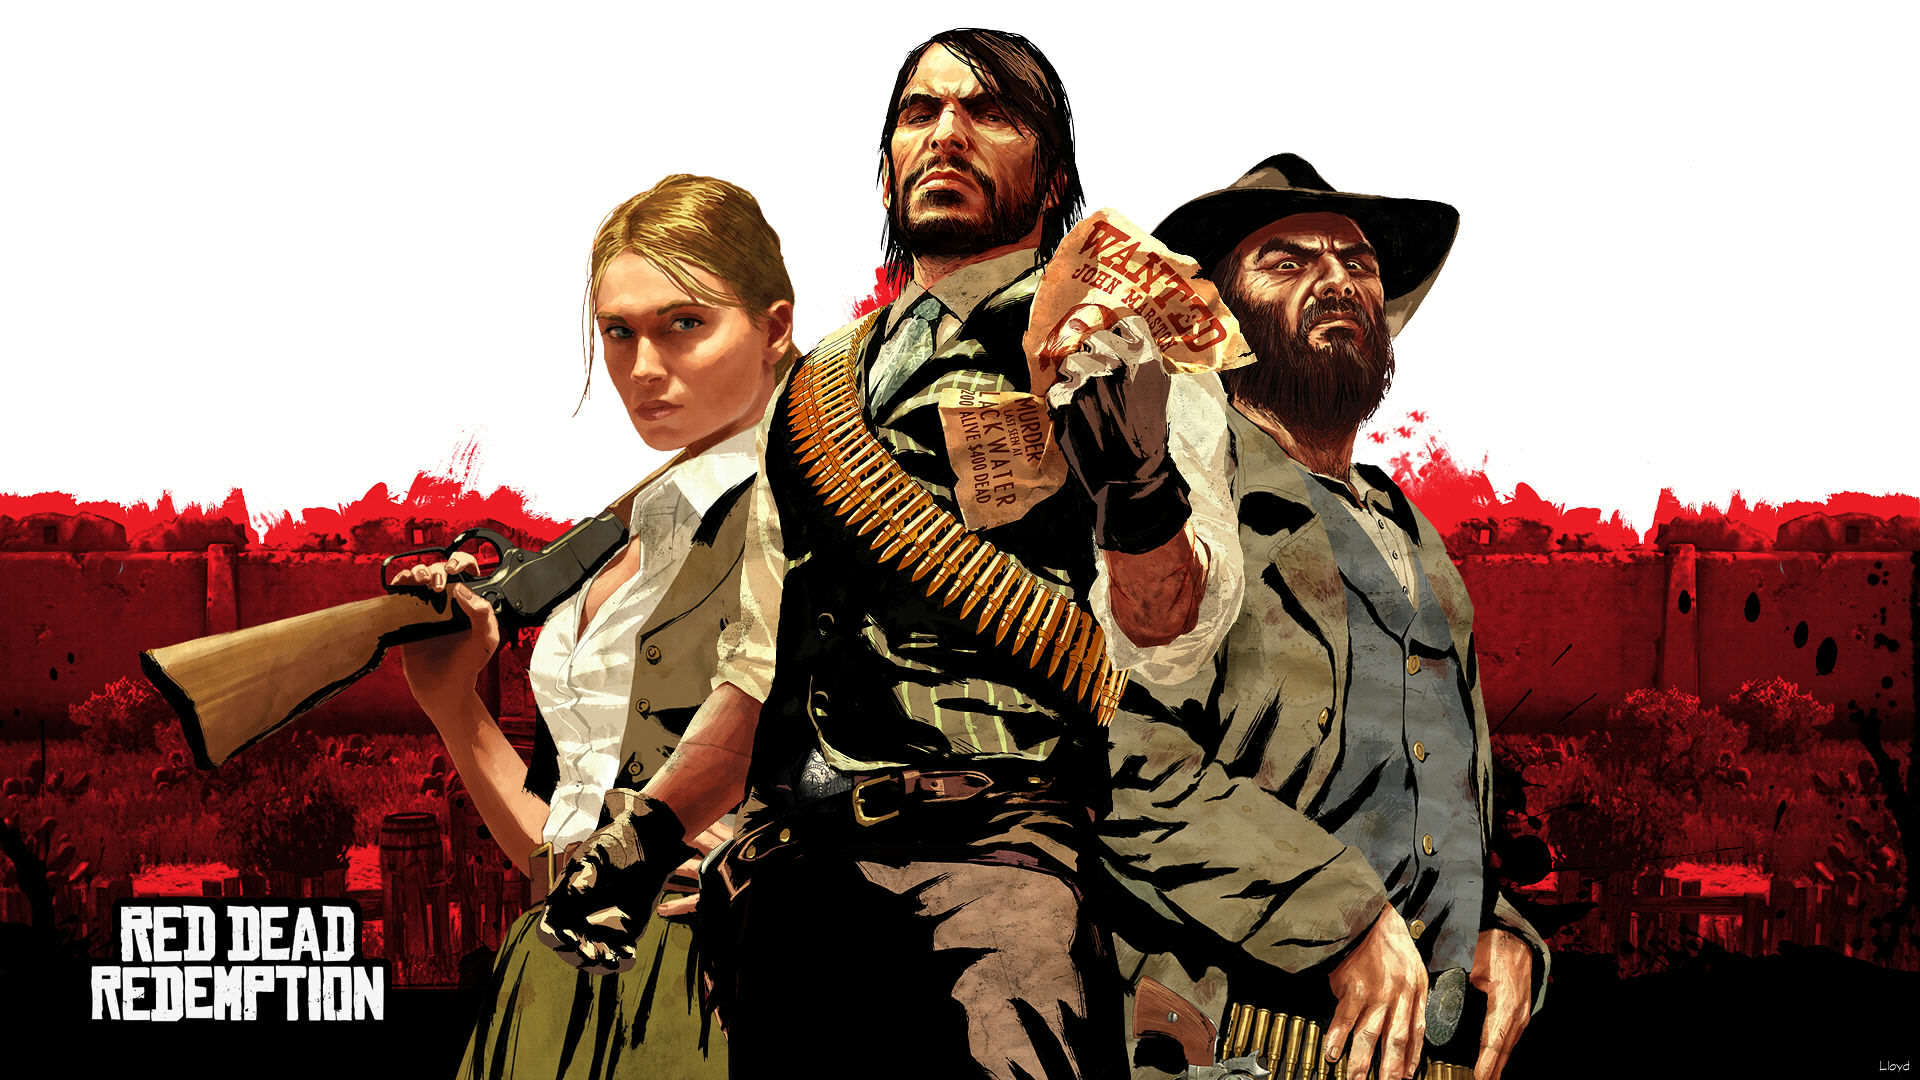 red-dead-redemption-2-the-witcher-3-makes-it-clear-what-rockstar-needs-to-do-red-dead-r-444408